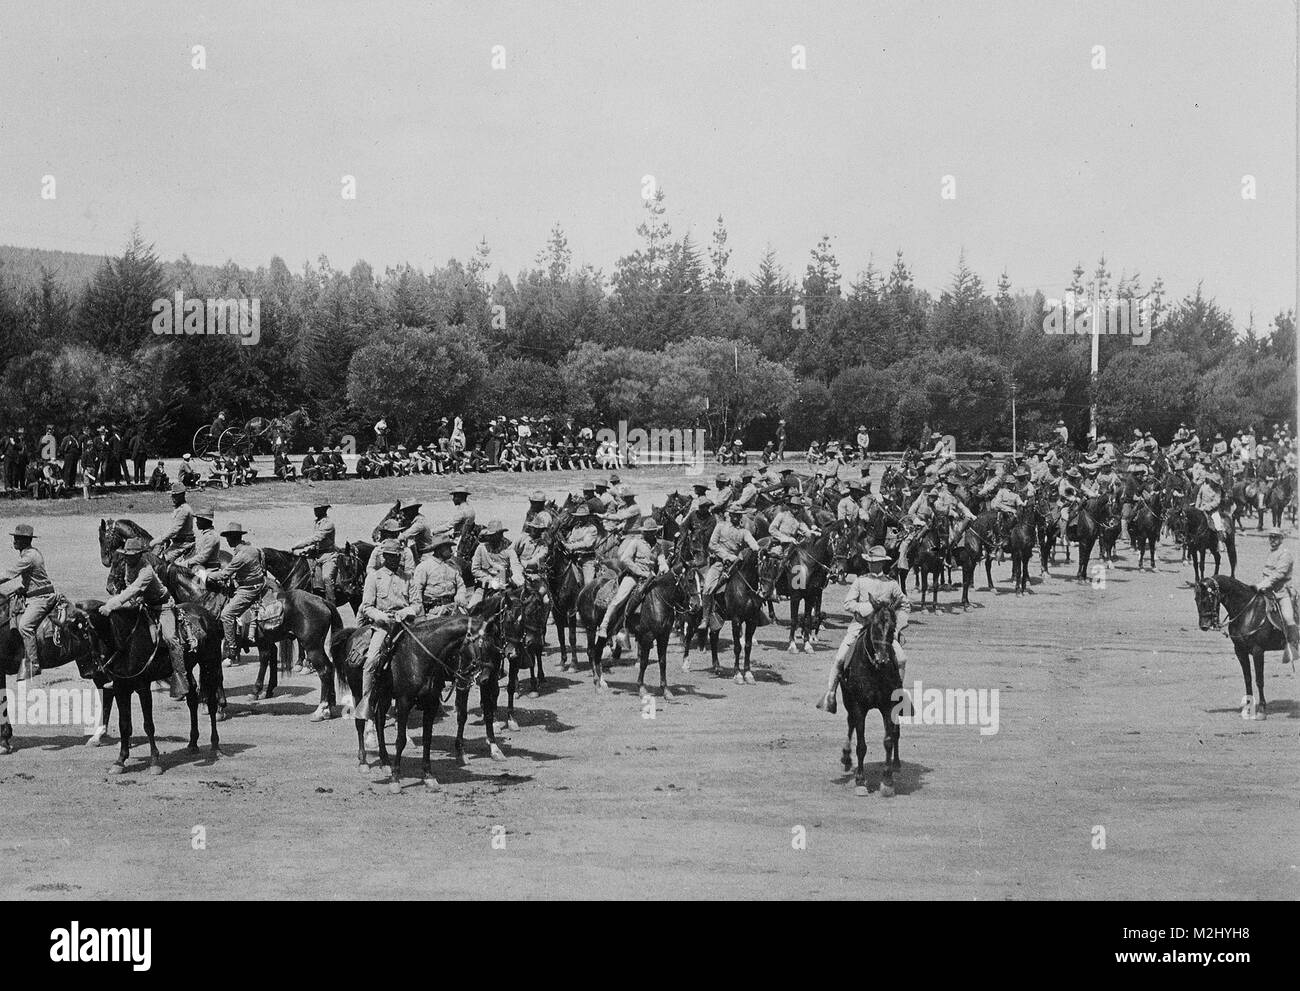 Buffalo Soldiers, 9th Cavalry Regiment, 1900 - Stock Image